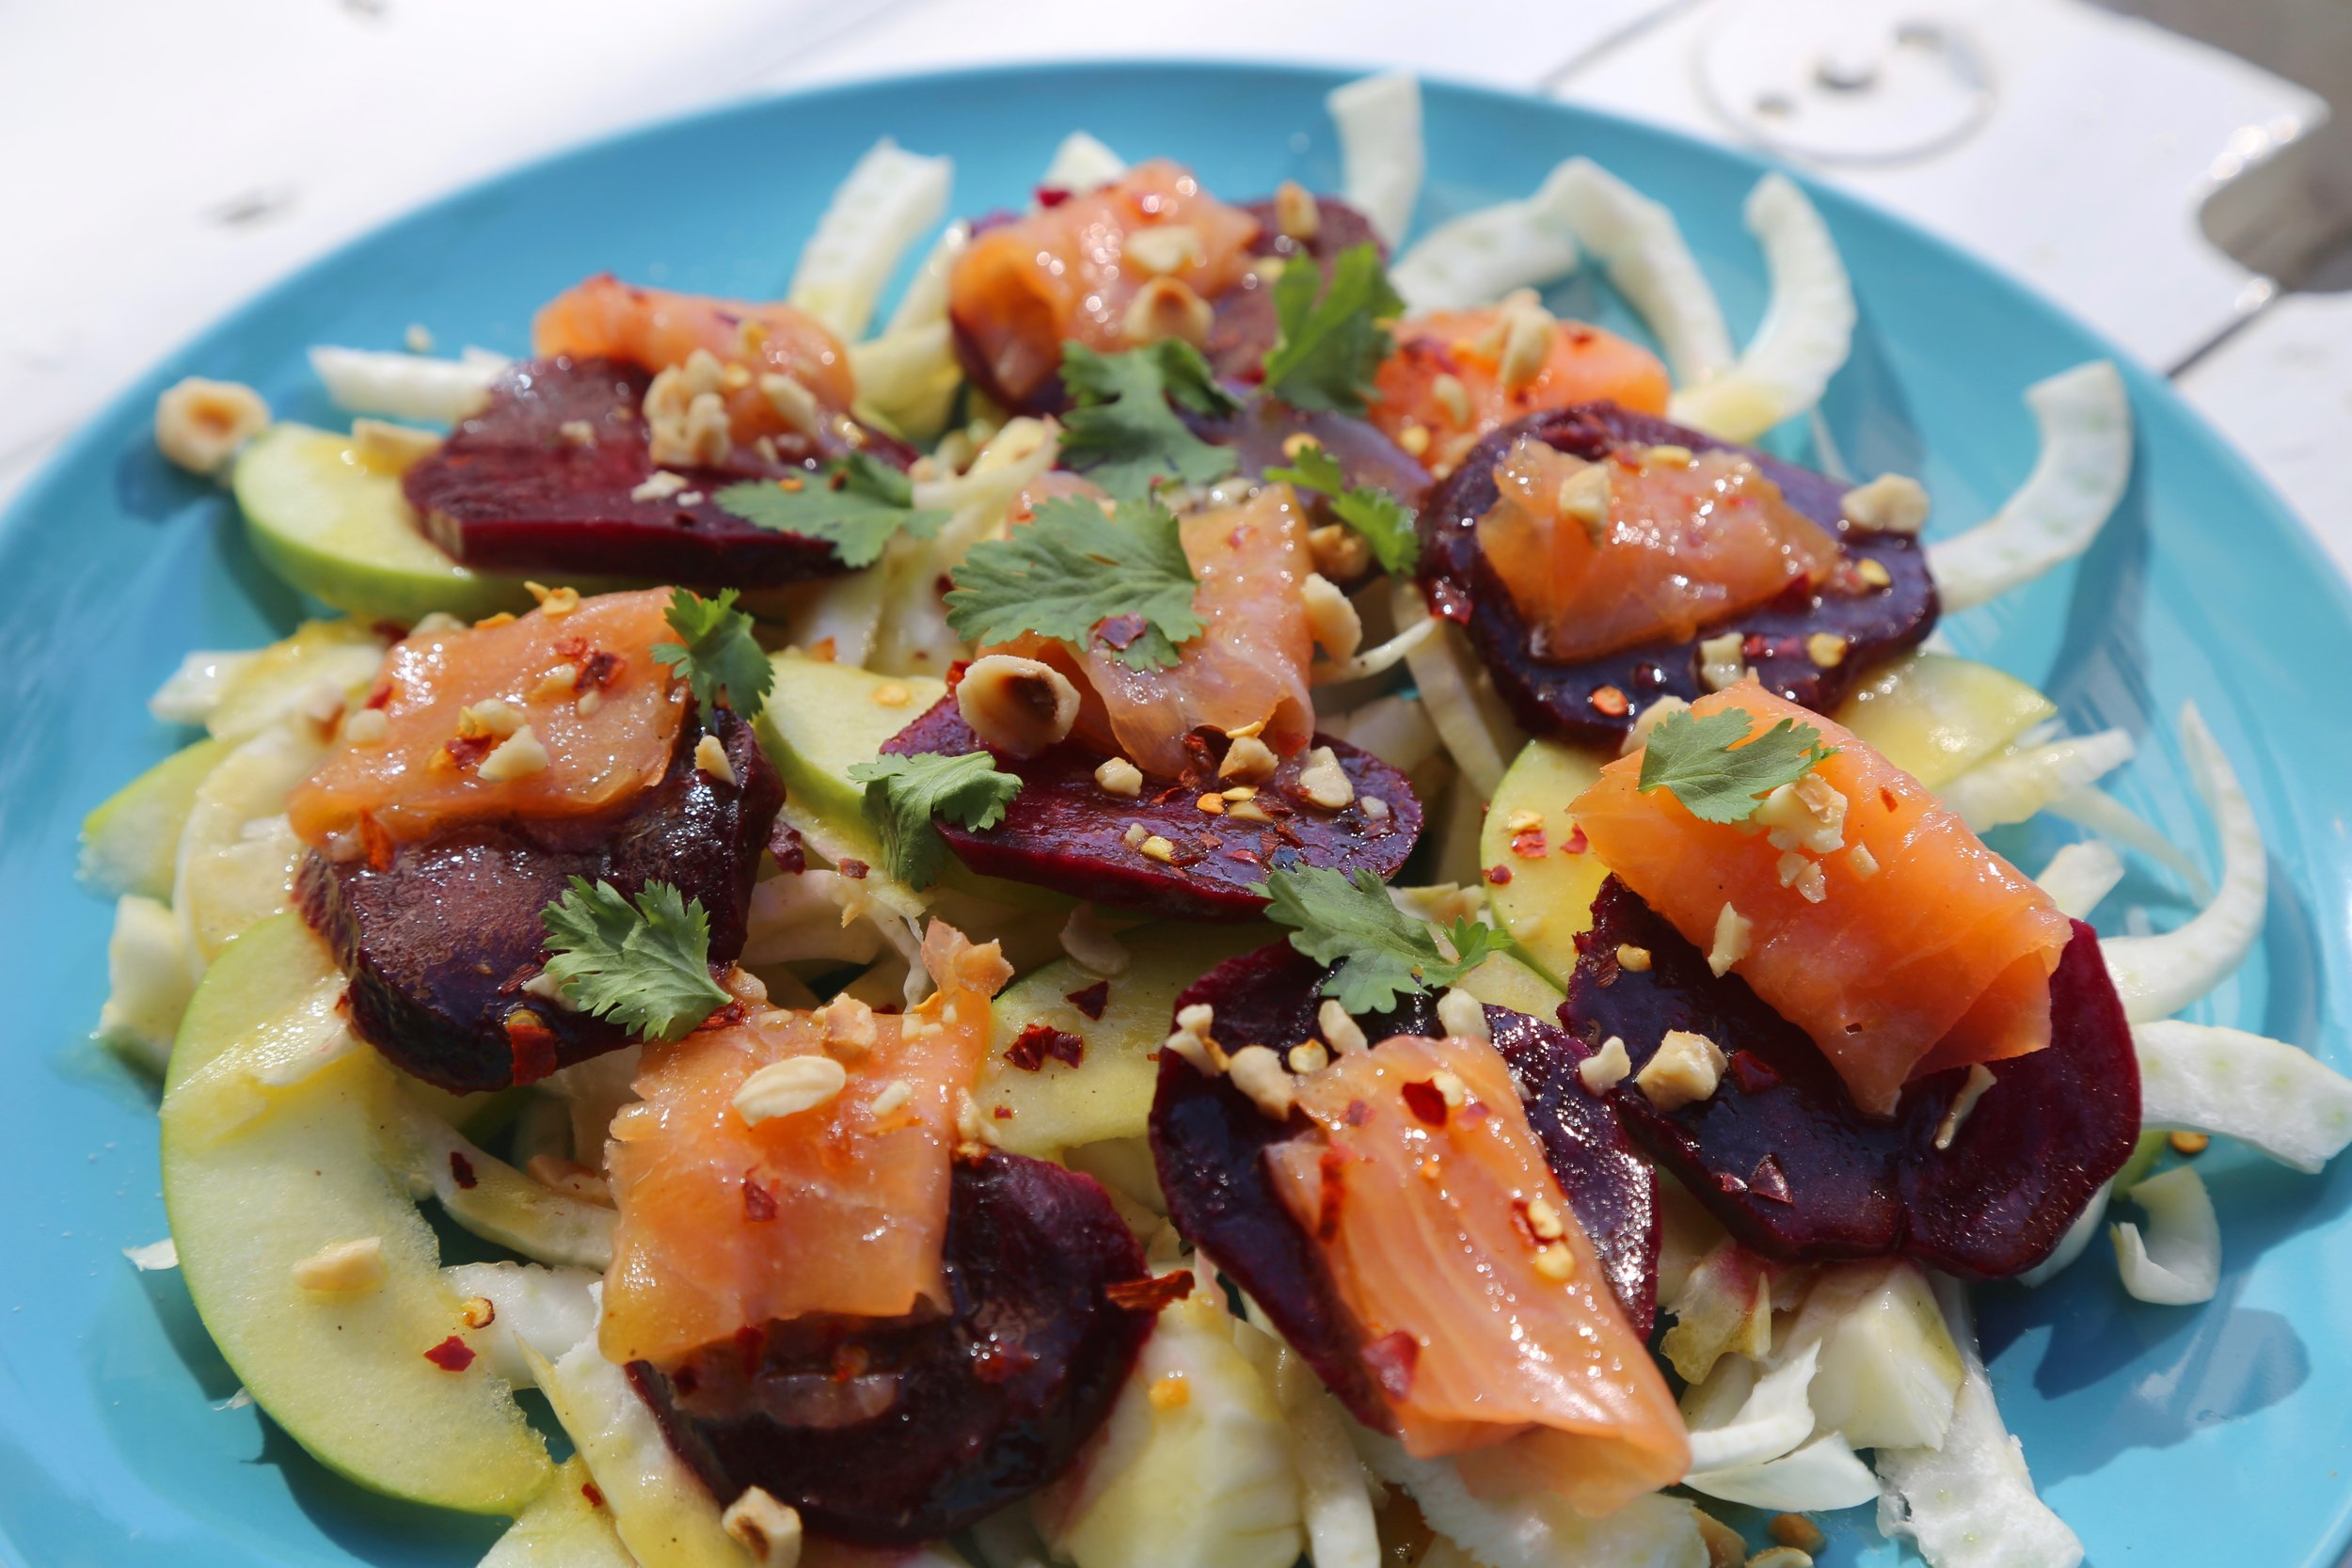 Smoked Salmon Salad: Thinly sliced fennel, beetroot, green apple, smoked salmon, chopped hazelnut and honey vinegar spicy dressing